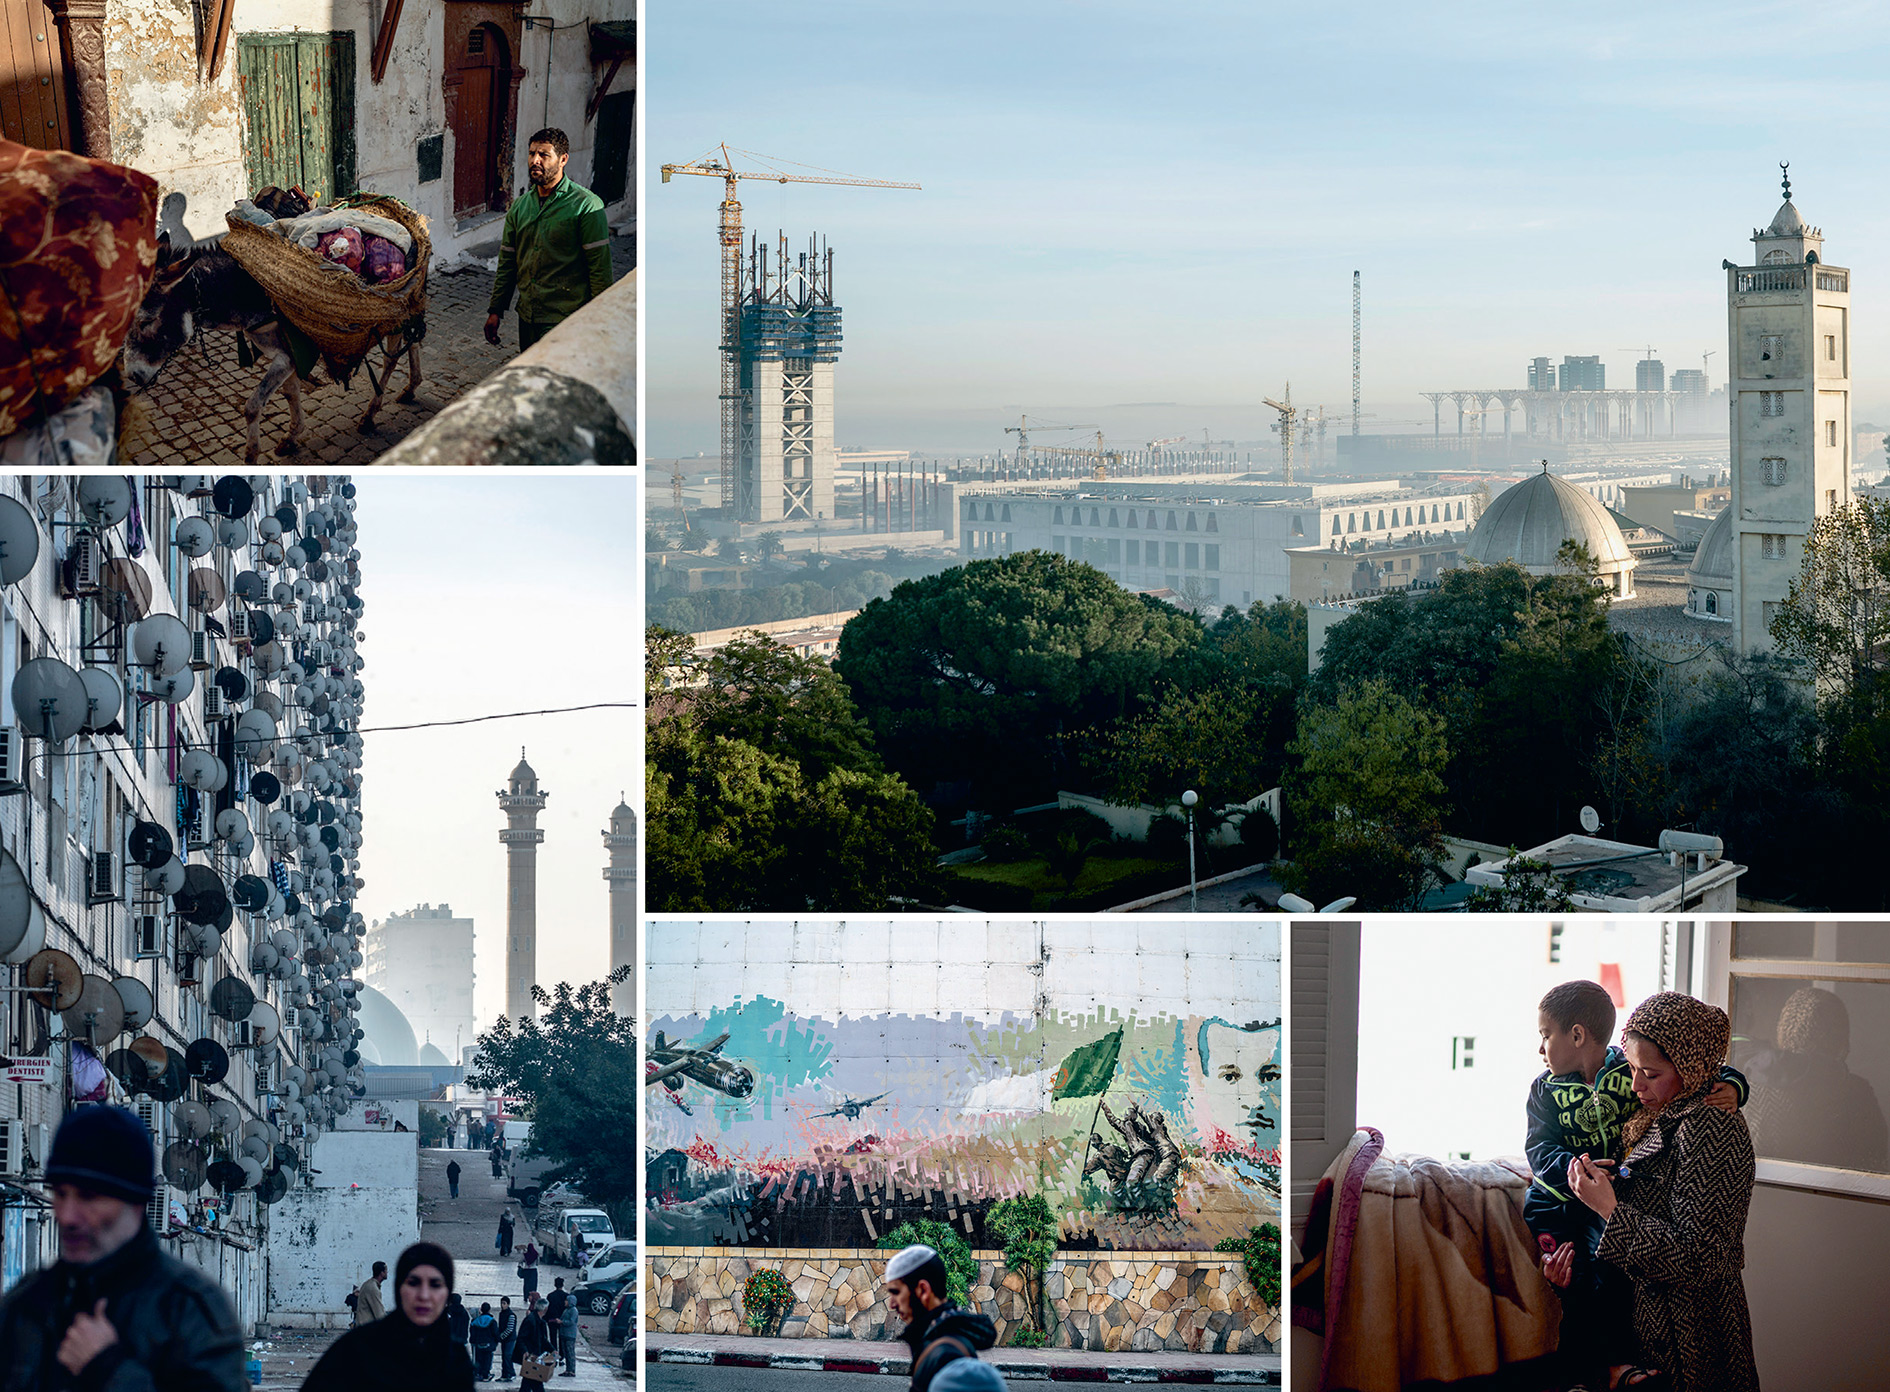 Clockwise from top right: The Great Mosque of Algiers, which will contain the world's tallest minaret, is being constructed in Mohammedia, near the capital, while an older mosque looks on; Nabila Ounas and her son in their new, government-supplied apartment in Cite Kourifa, 20 miles from Algiers; a man walks past a mural commemorating the war of independence against France;  satellite dishes cling to the external wall of a tenement building called 'Les Dunes', said to be the longest building in Algiers; donkeys transport rubbish from the casbah in Algiers through the narrow streets.